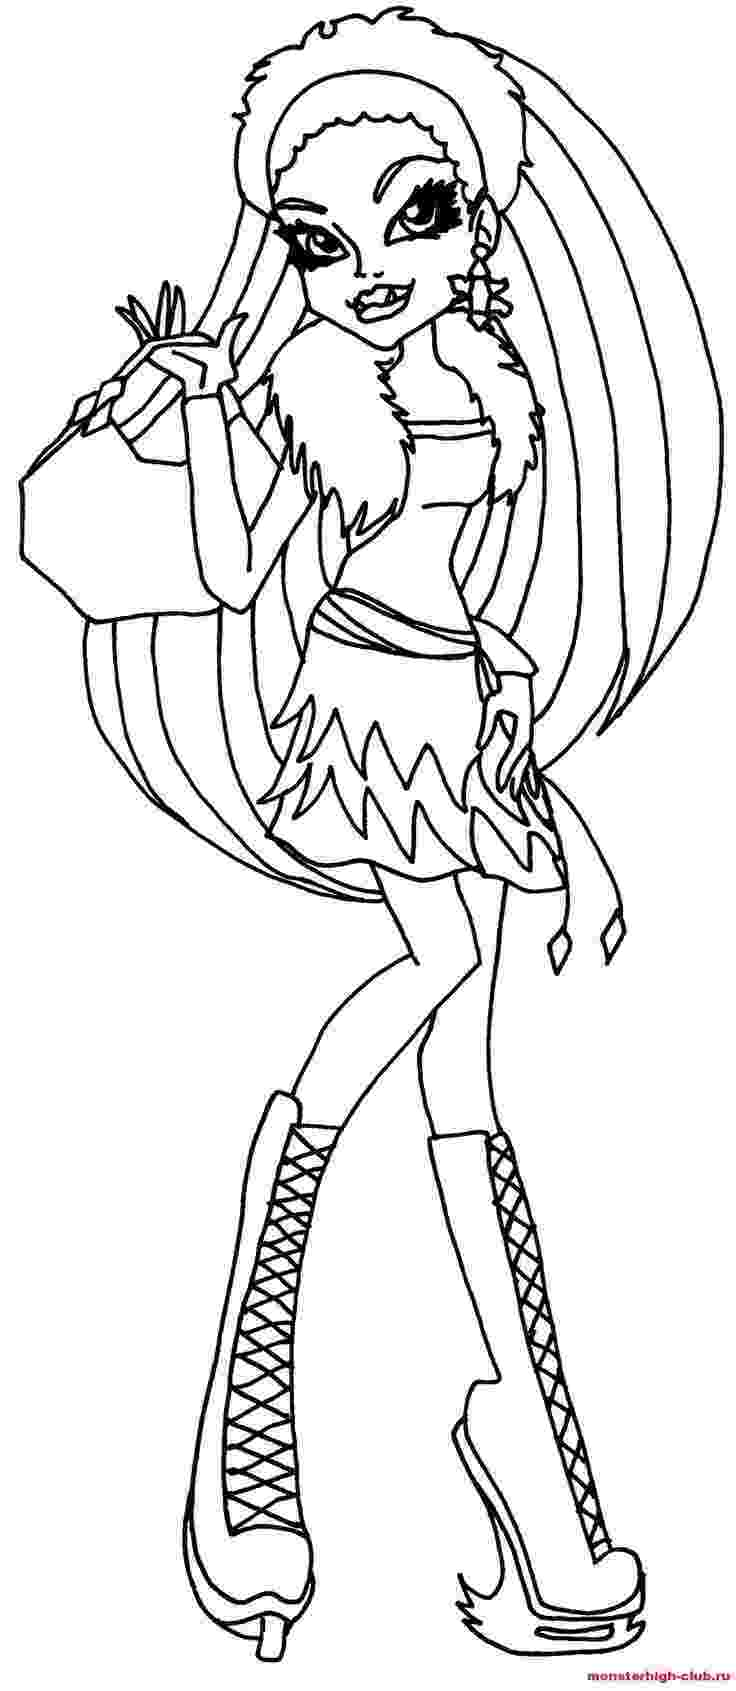 monsters high coloring pages monster high frankie stein coloring page monster high pages coloring monsters high